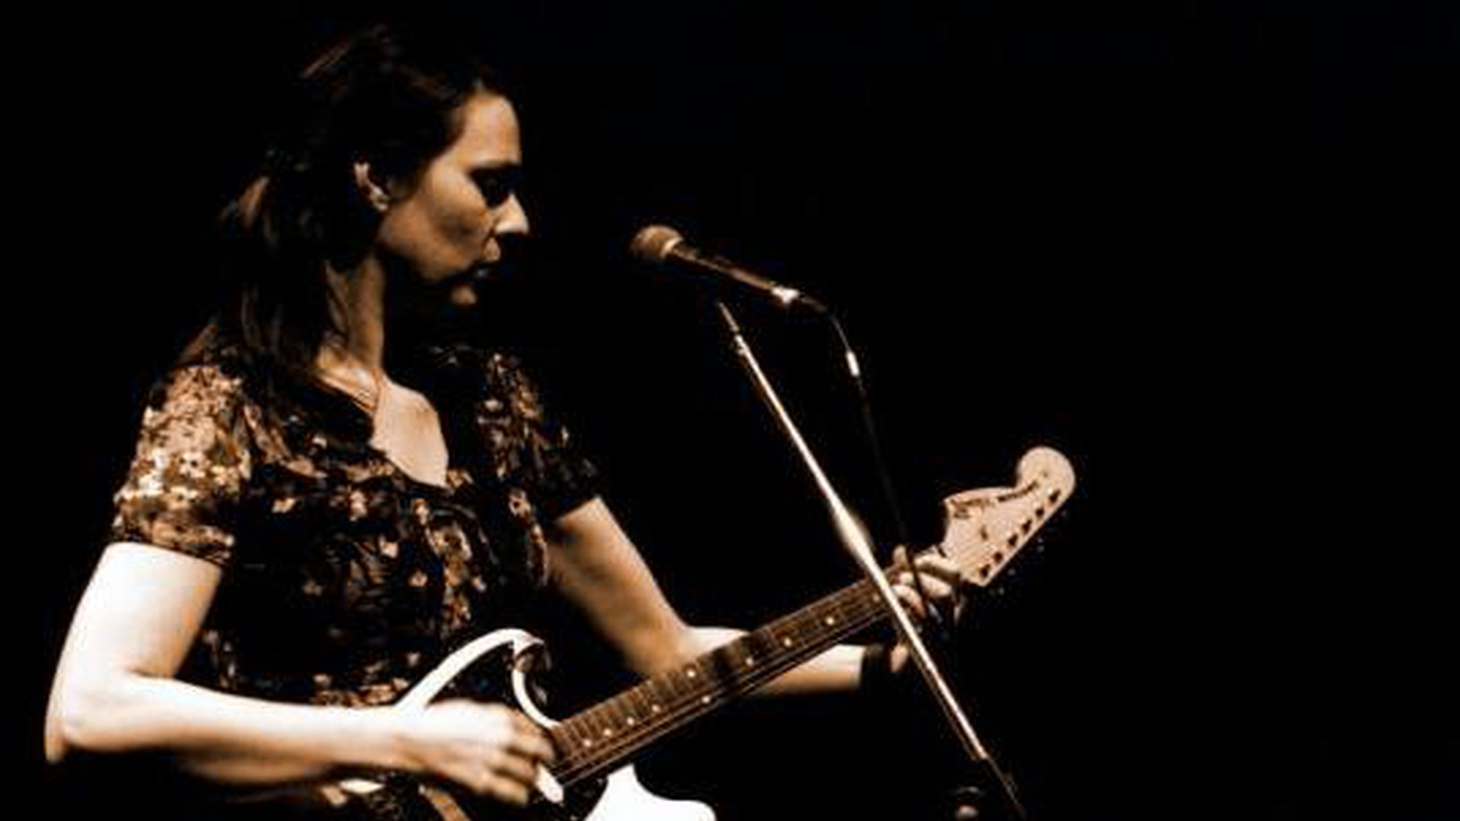 Beloved pop band Stereolab ended their run in 2009, but front-woman Laetitia Sadier continues to release notable music as a solo artist.